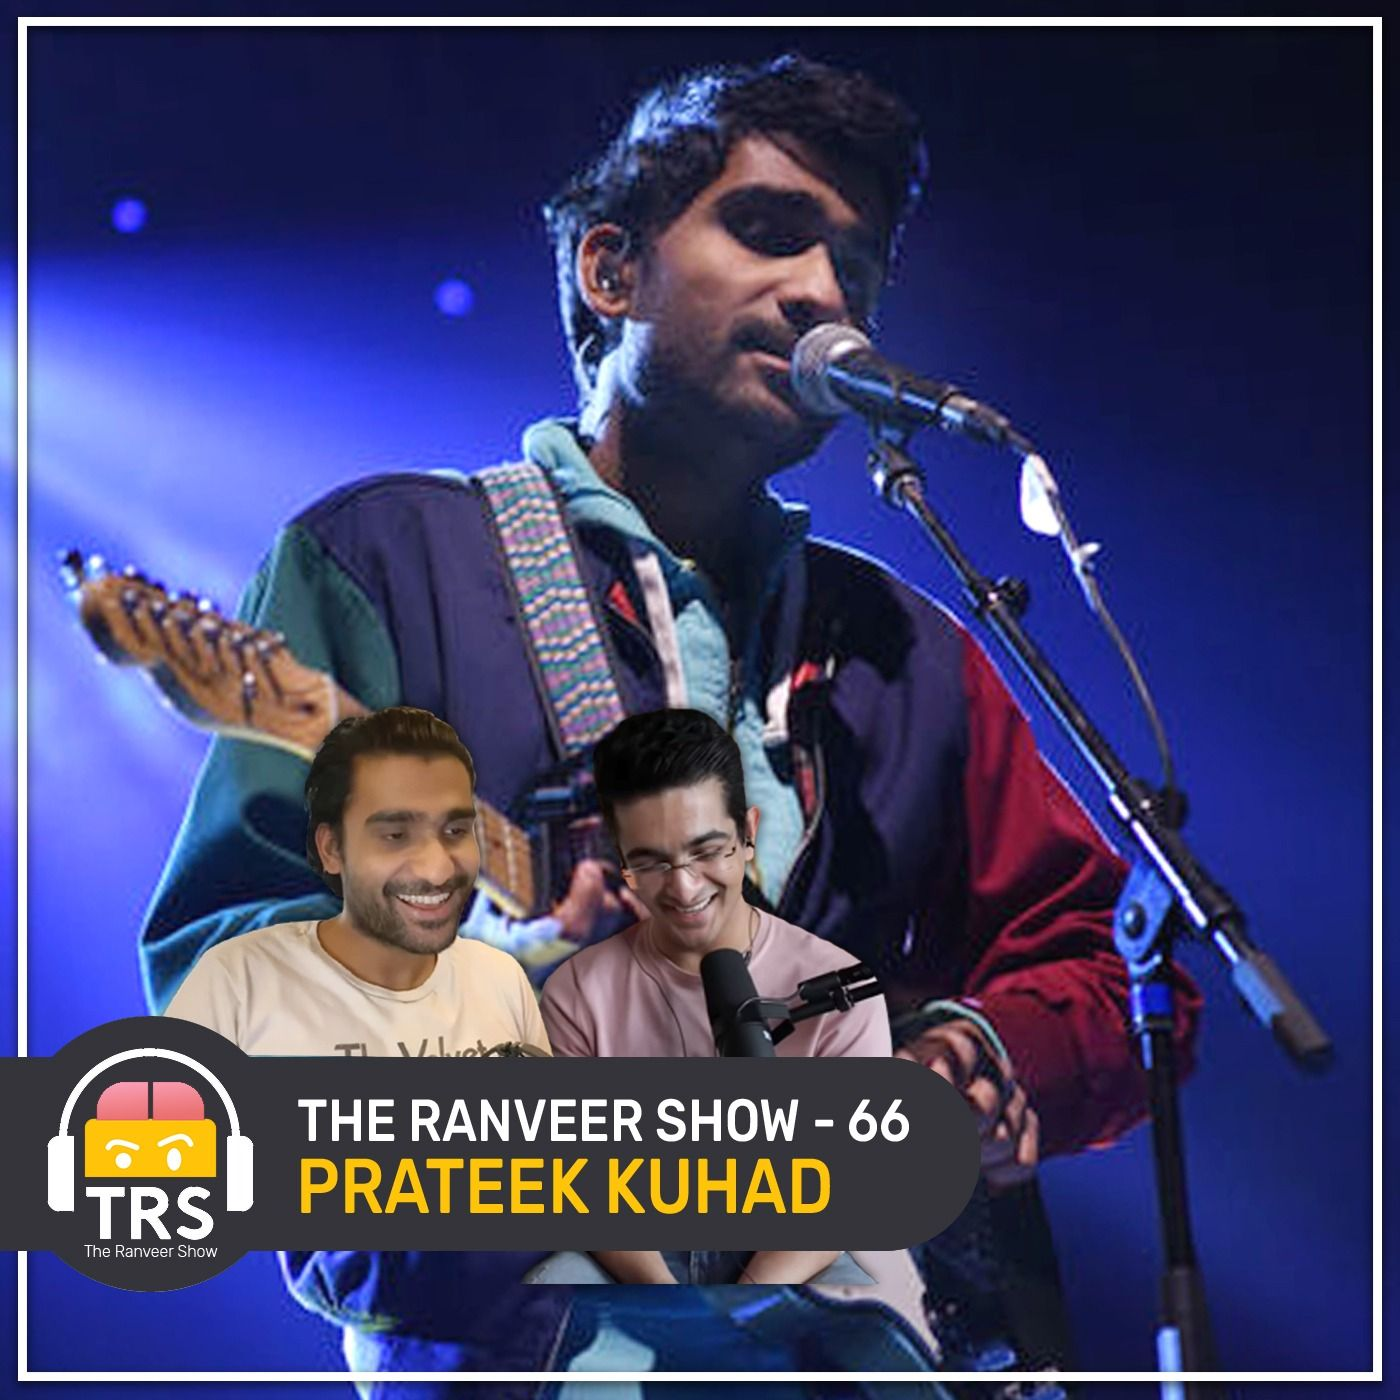 Prateek Kuhad On Love Life Learnings, Songwriting Process & Success Mantras | The Ranveer Show 66